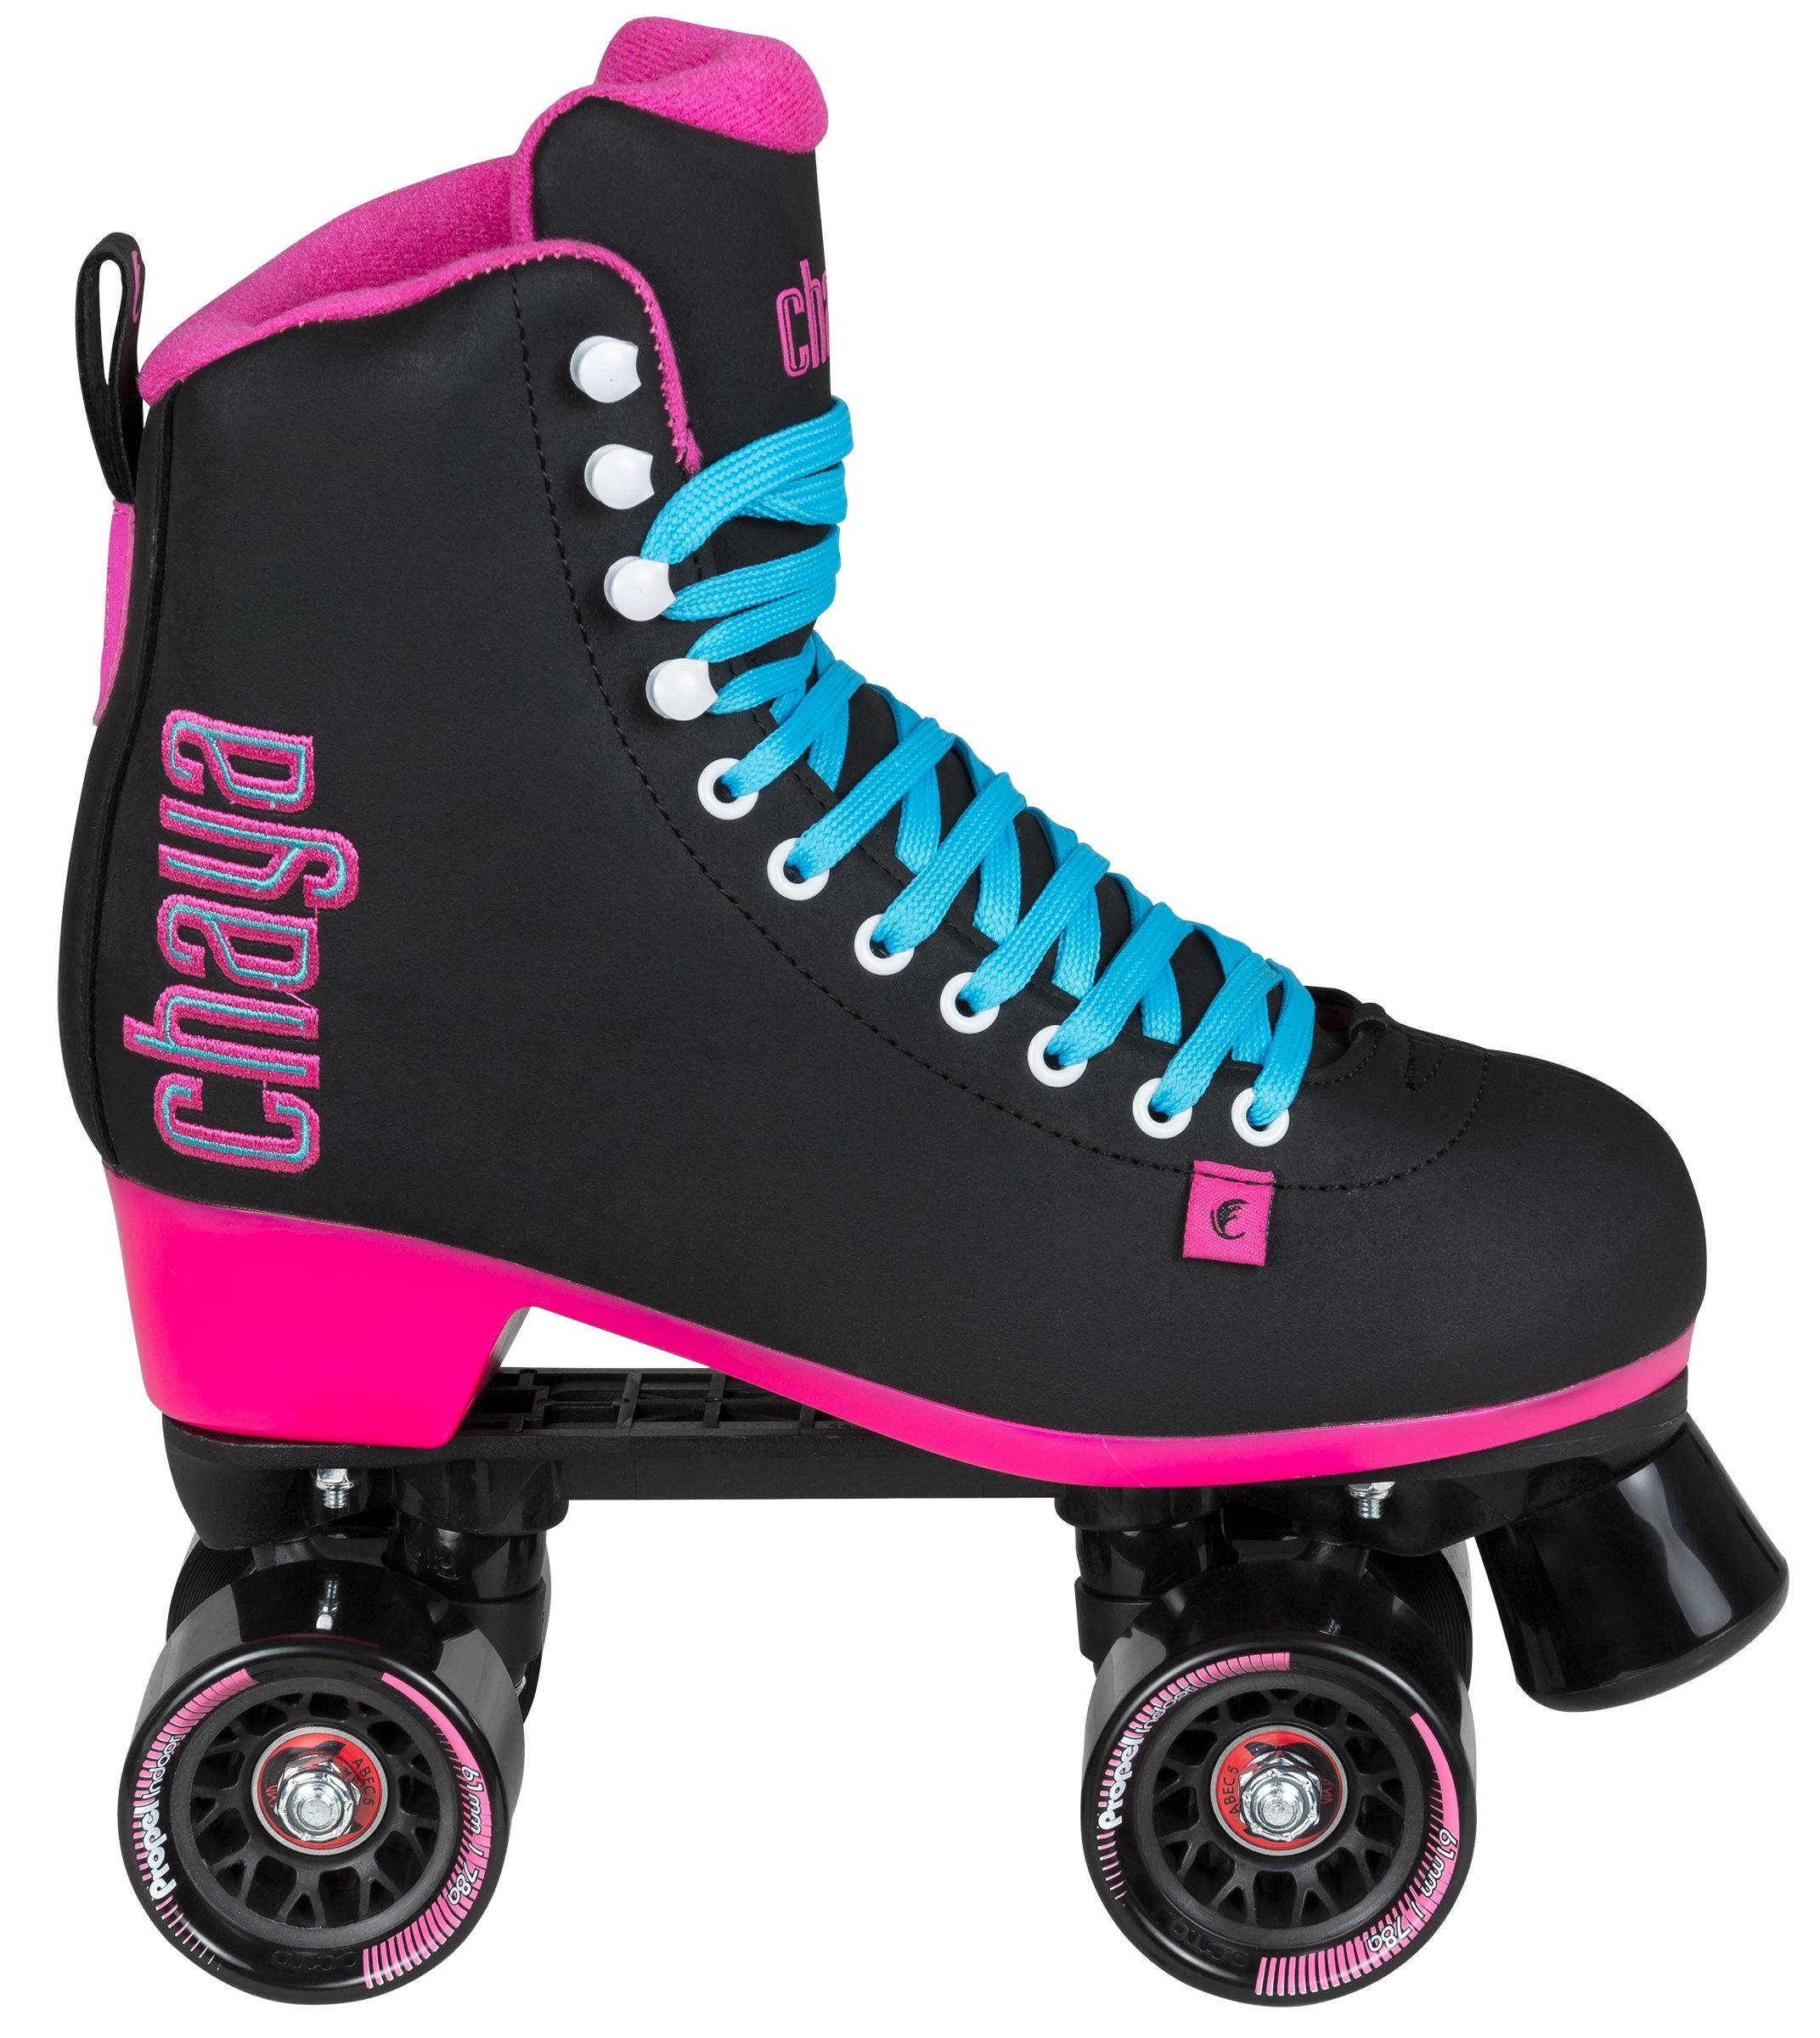 Chaya Melrose Black & Pink Quad Indoor/Outdoor Roller Skates (Euro 40 / US 9) by Chaya (Image #2)